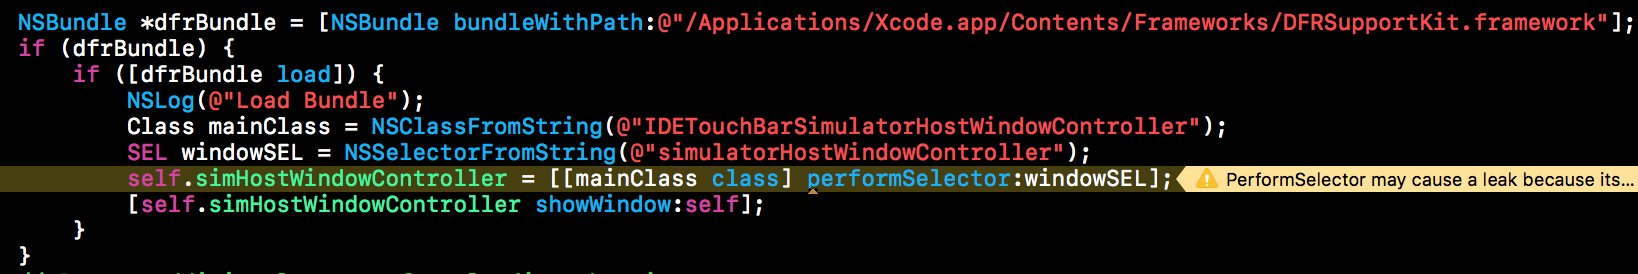 And it's possible for app to borrow the touch bar from Xcode 🙃 cc @stroughtonsmith https://t.co/qivvFbvvsU